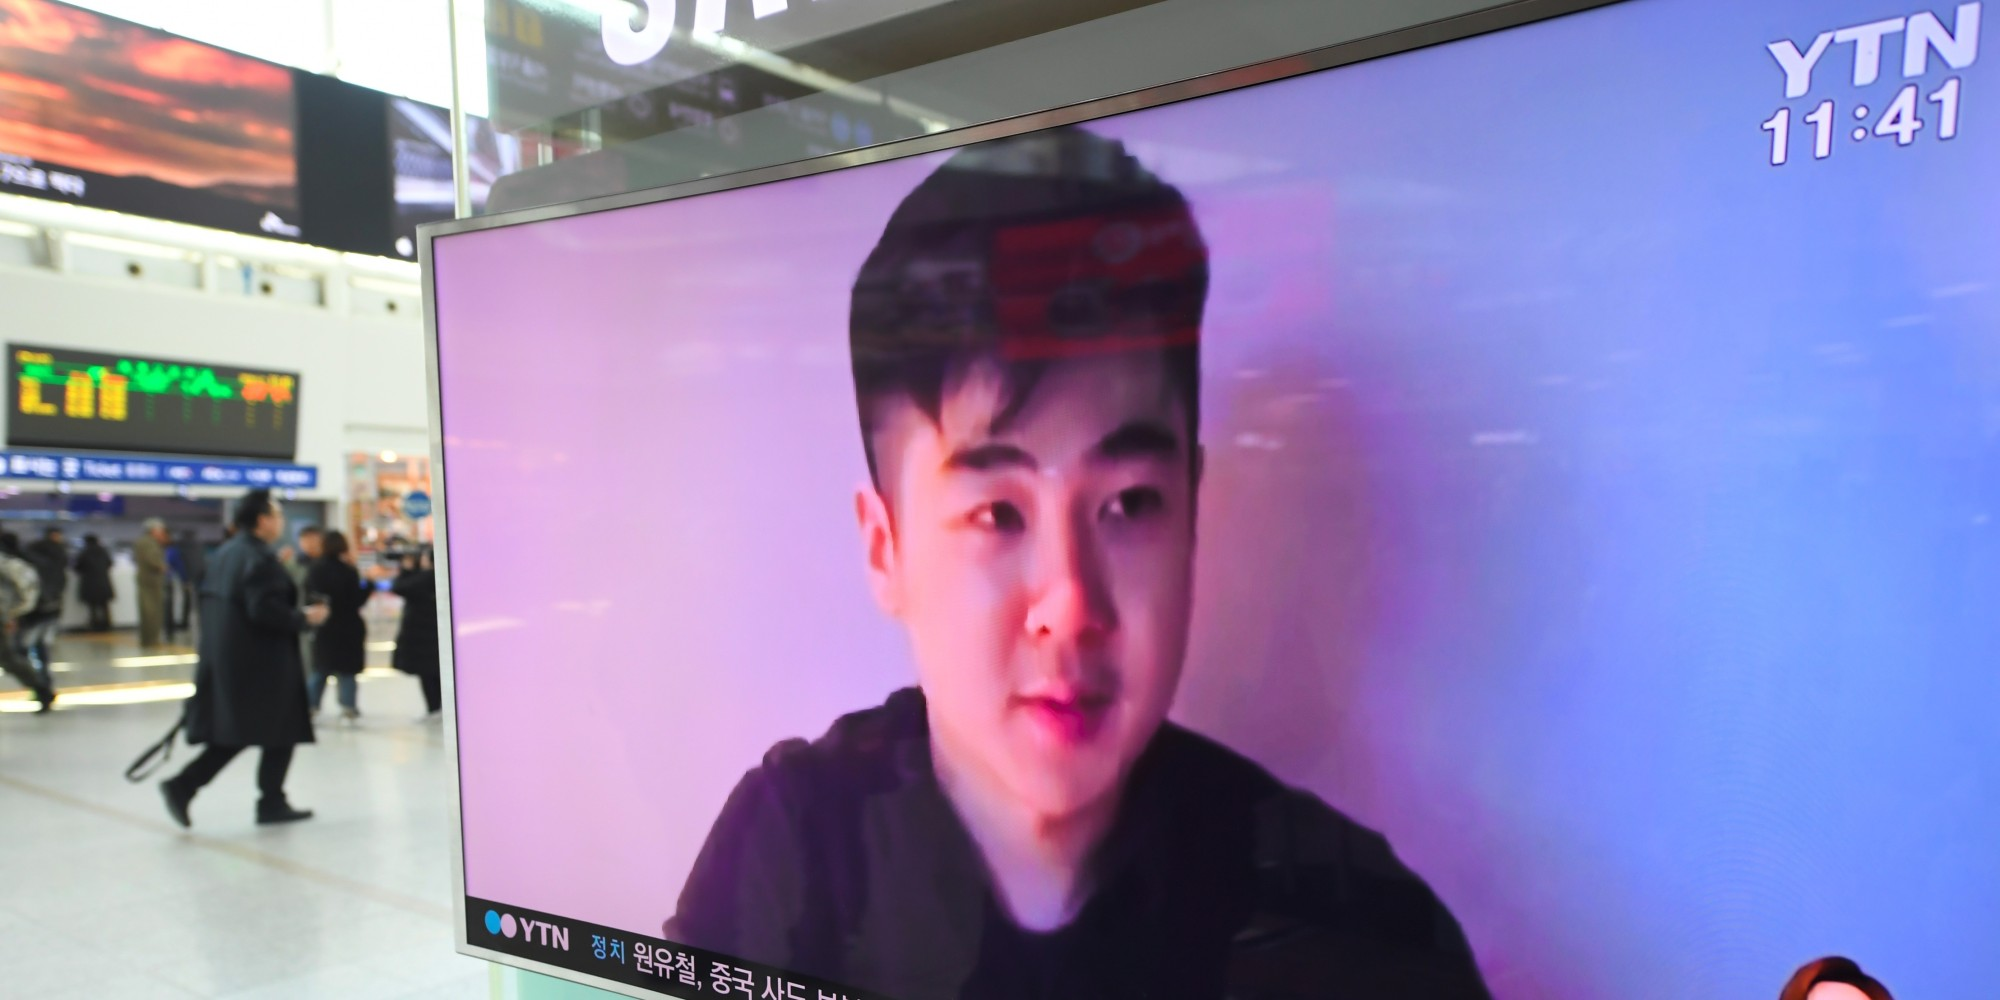 South Koreans watch a television news showing a video footage of a man who claims he is Kim Han-Sol, a nephew of North Korea's leader Kim Jong-Un, at a railway station in Seoul on March 8, 2017. The video of a man describing himself as the son of assassinated North Korean exile Kim Jong-Nam emerged on March 8, apparently the first time a family member has spoken about the killing. / AFP PHOTO / JUNG Yeon-Je        (Photo credit should read JUNG YEON-JE/AFP/Getty Images)